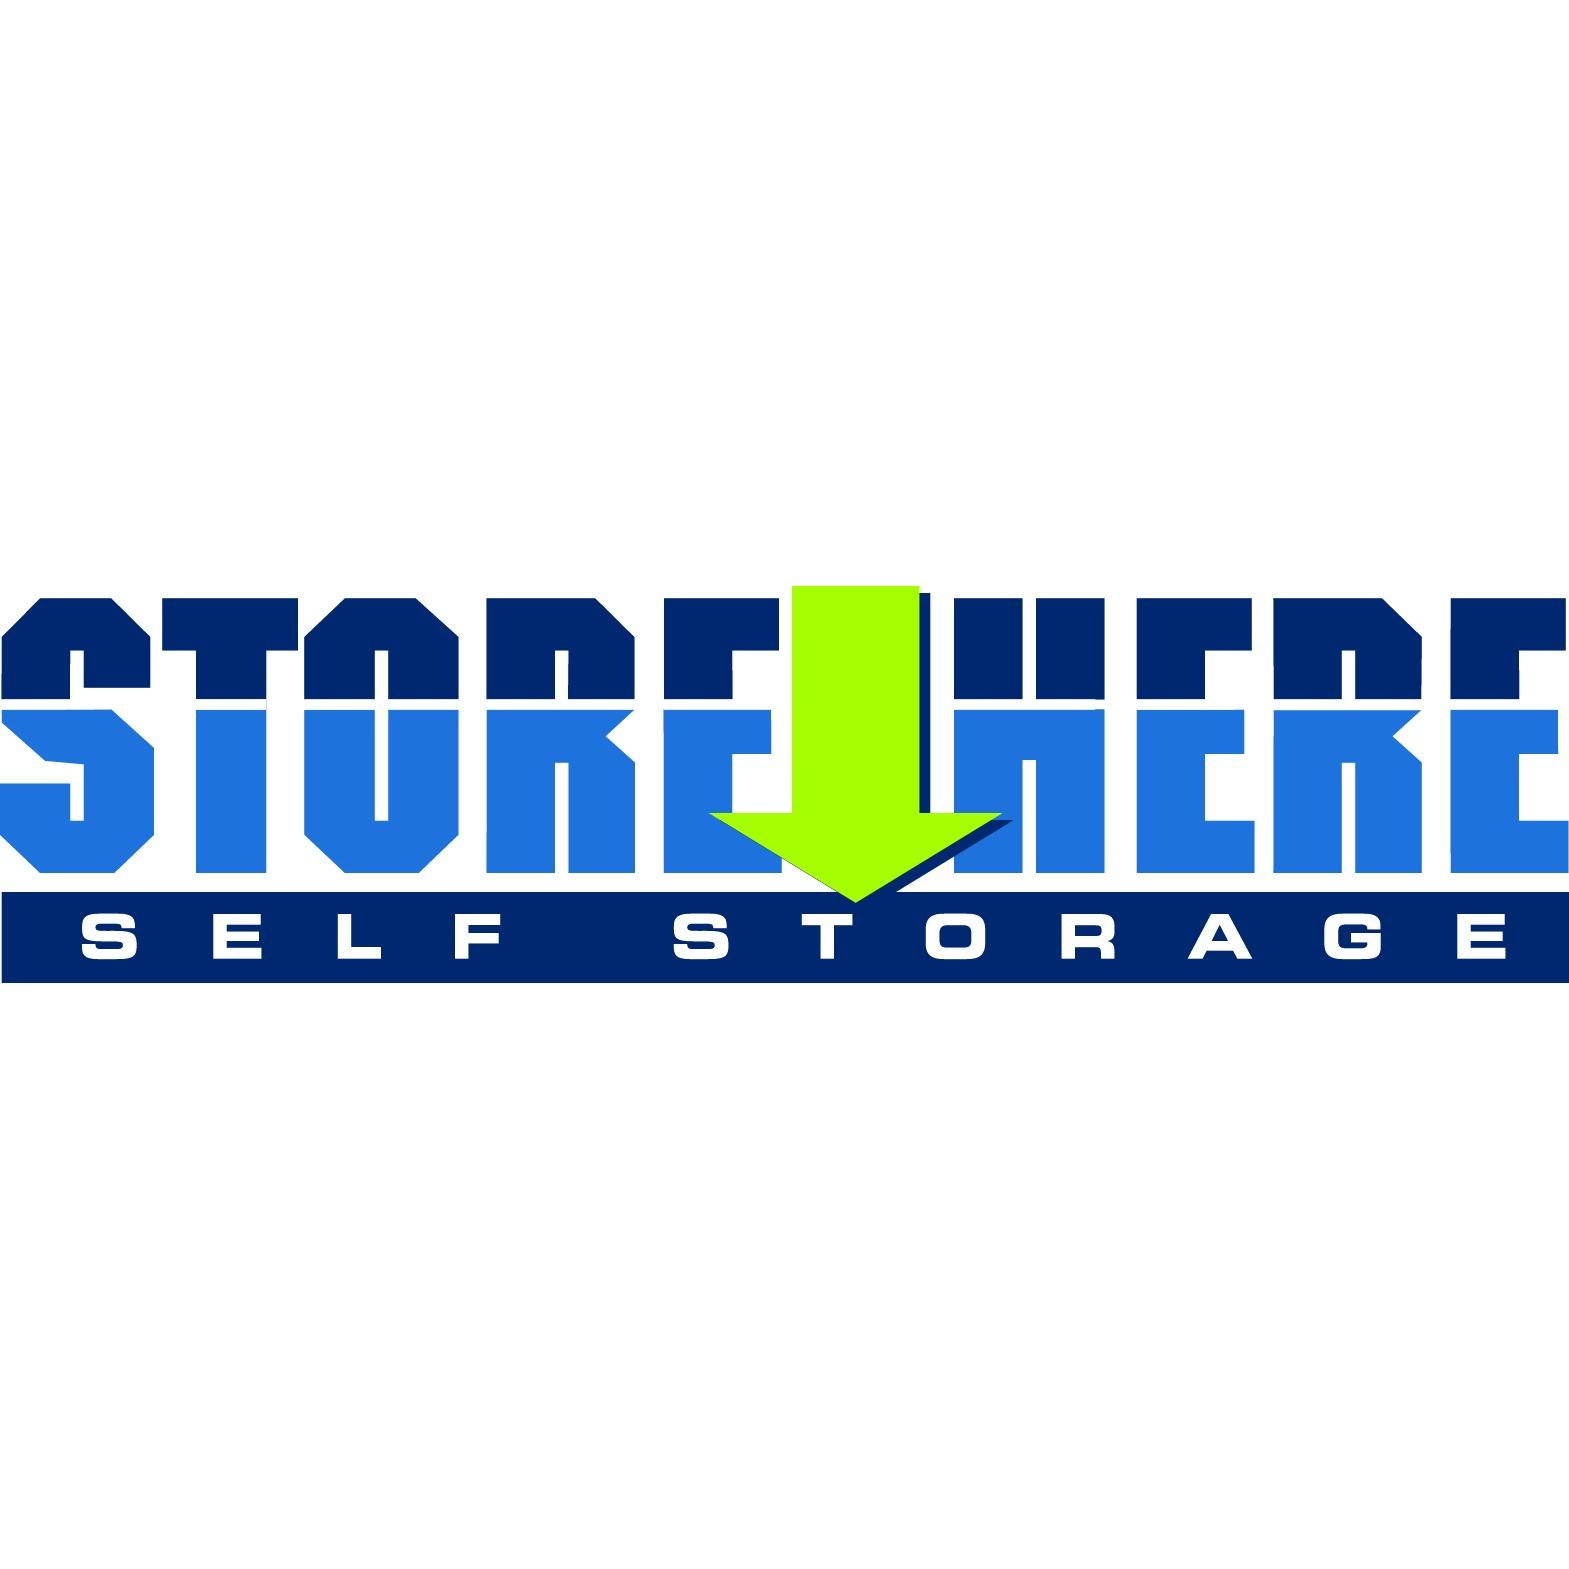 Arovista Self Storage image 3